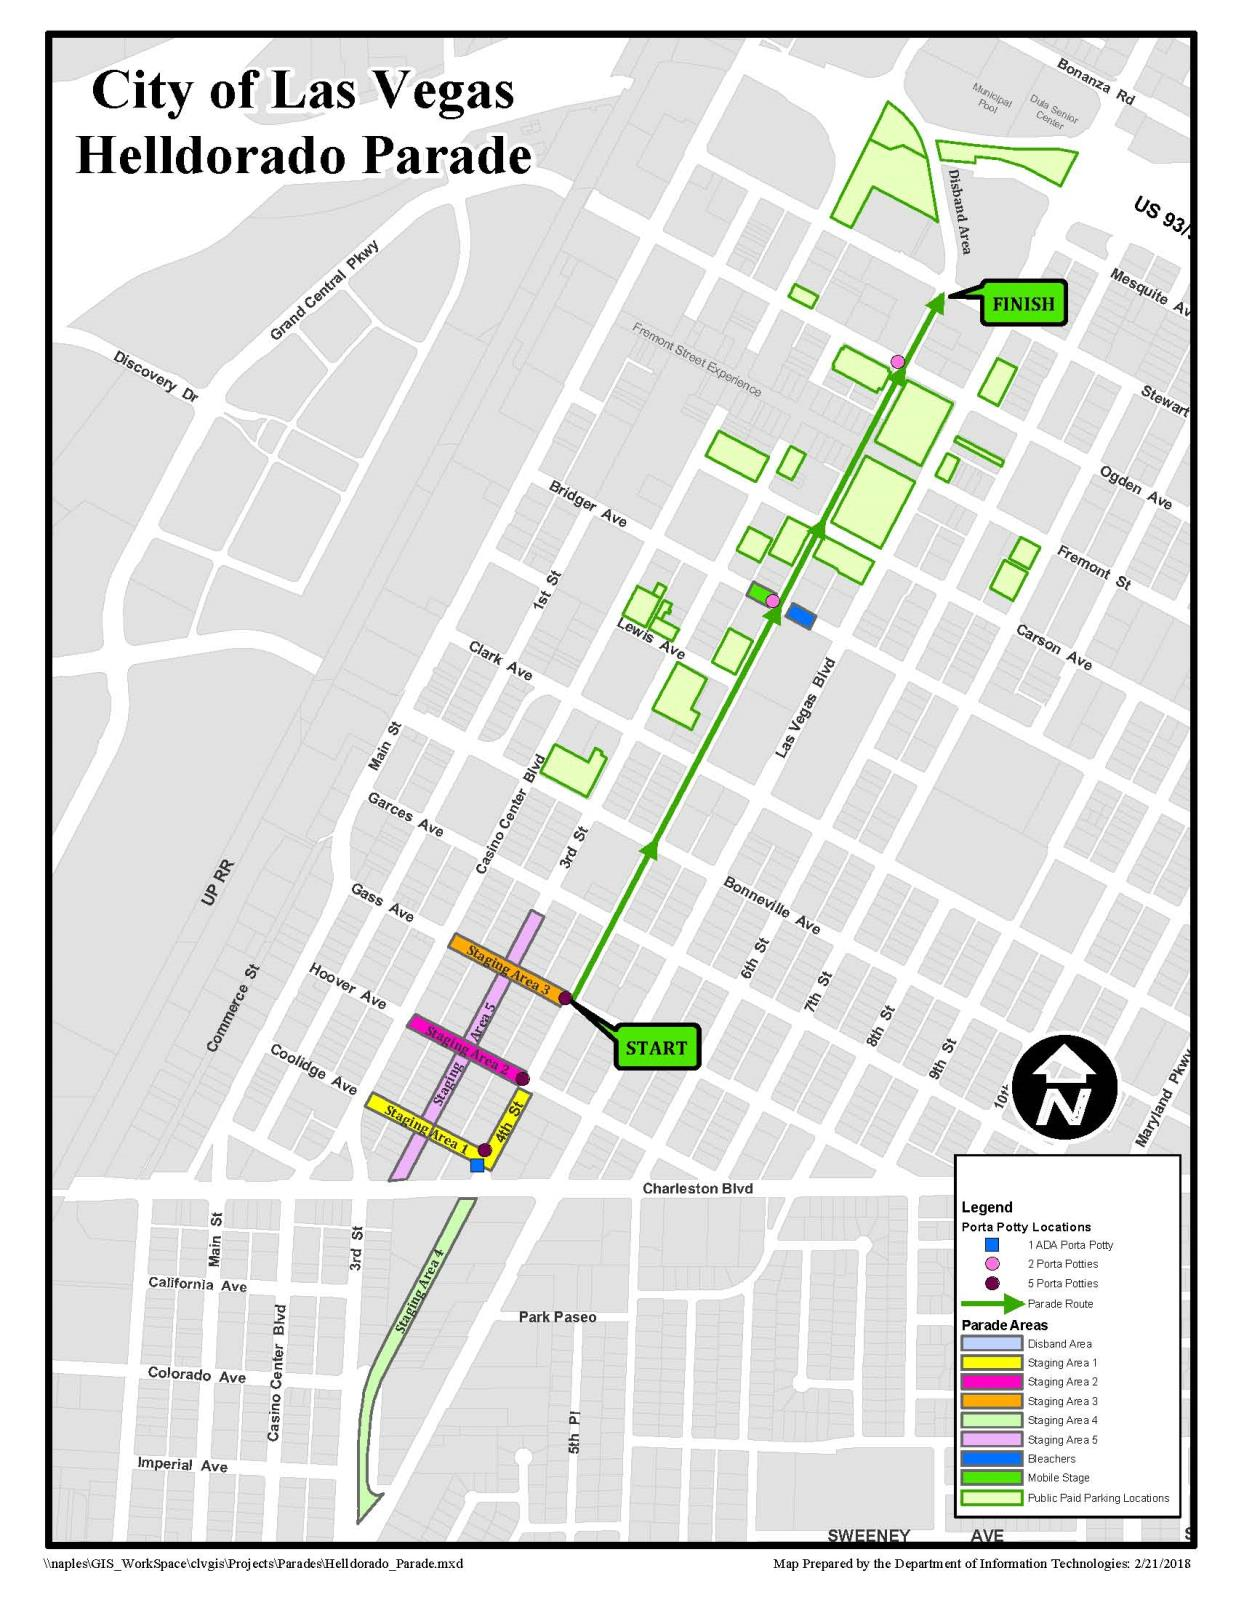 Helldorado Parade Parking-Route-Staging Map 2018.jpg